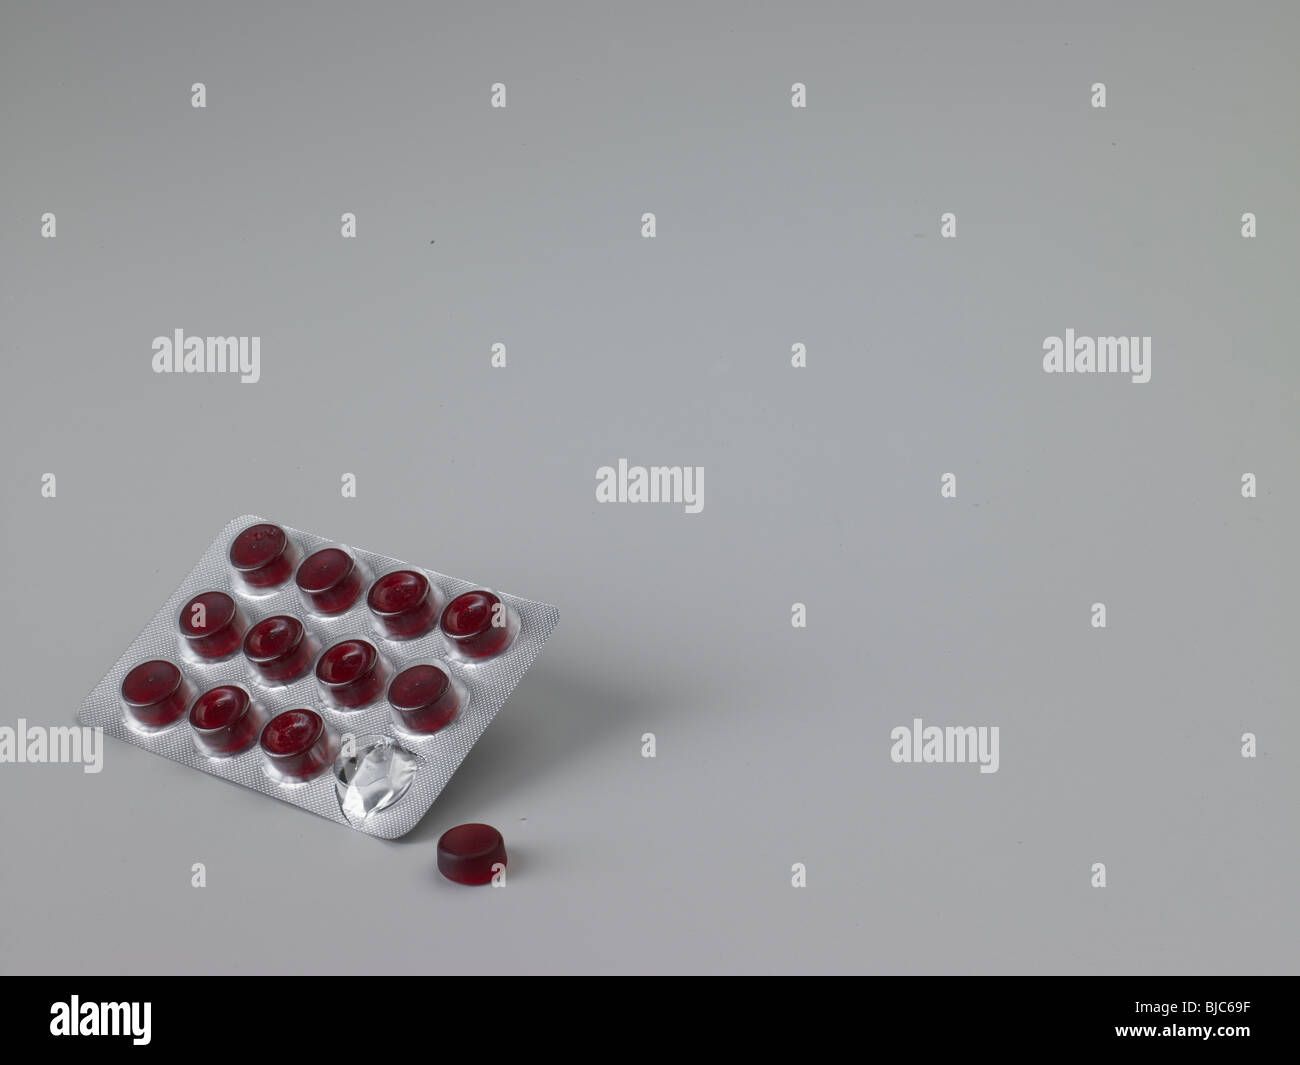 pharmaceutical tablets on grey background. Red  tablets in blister pack with one tablet out of packaging. medium - Stock Image